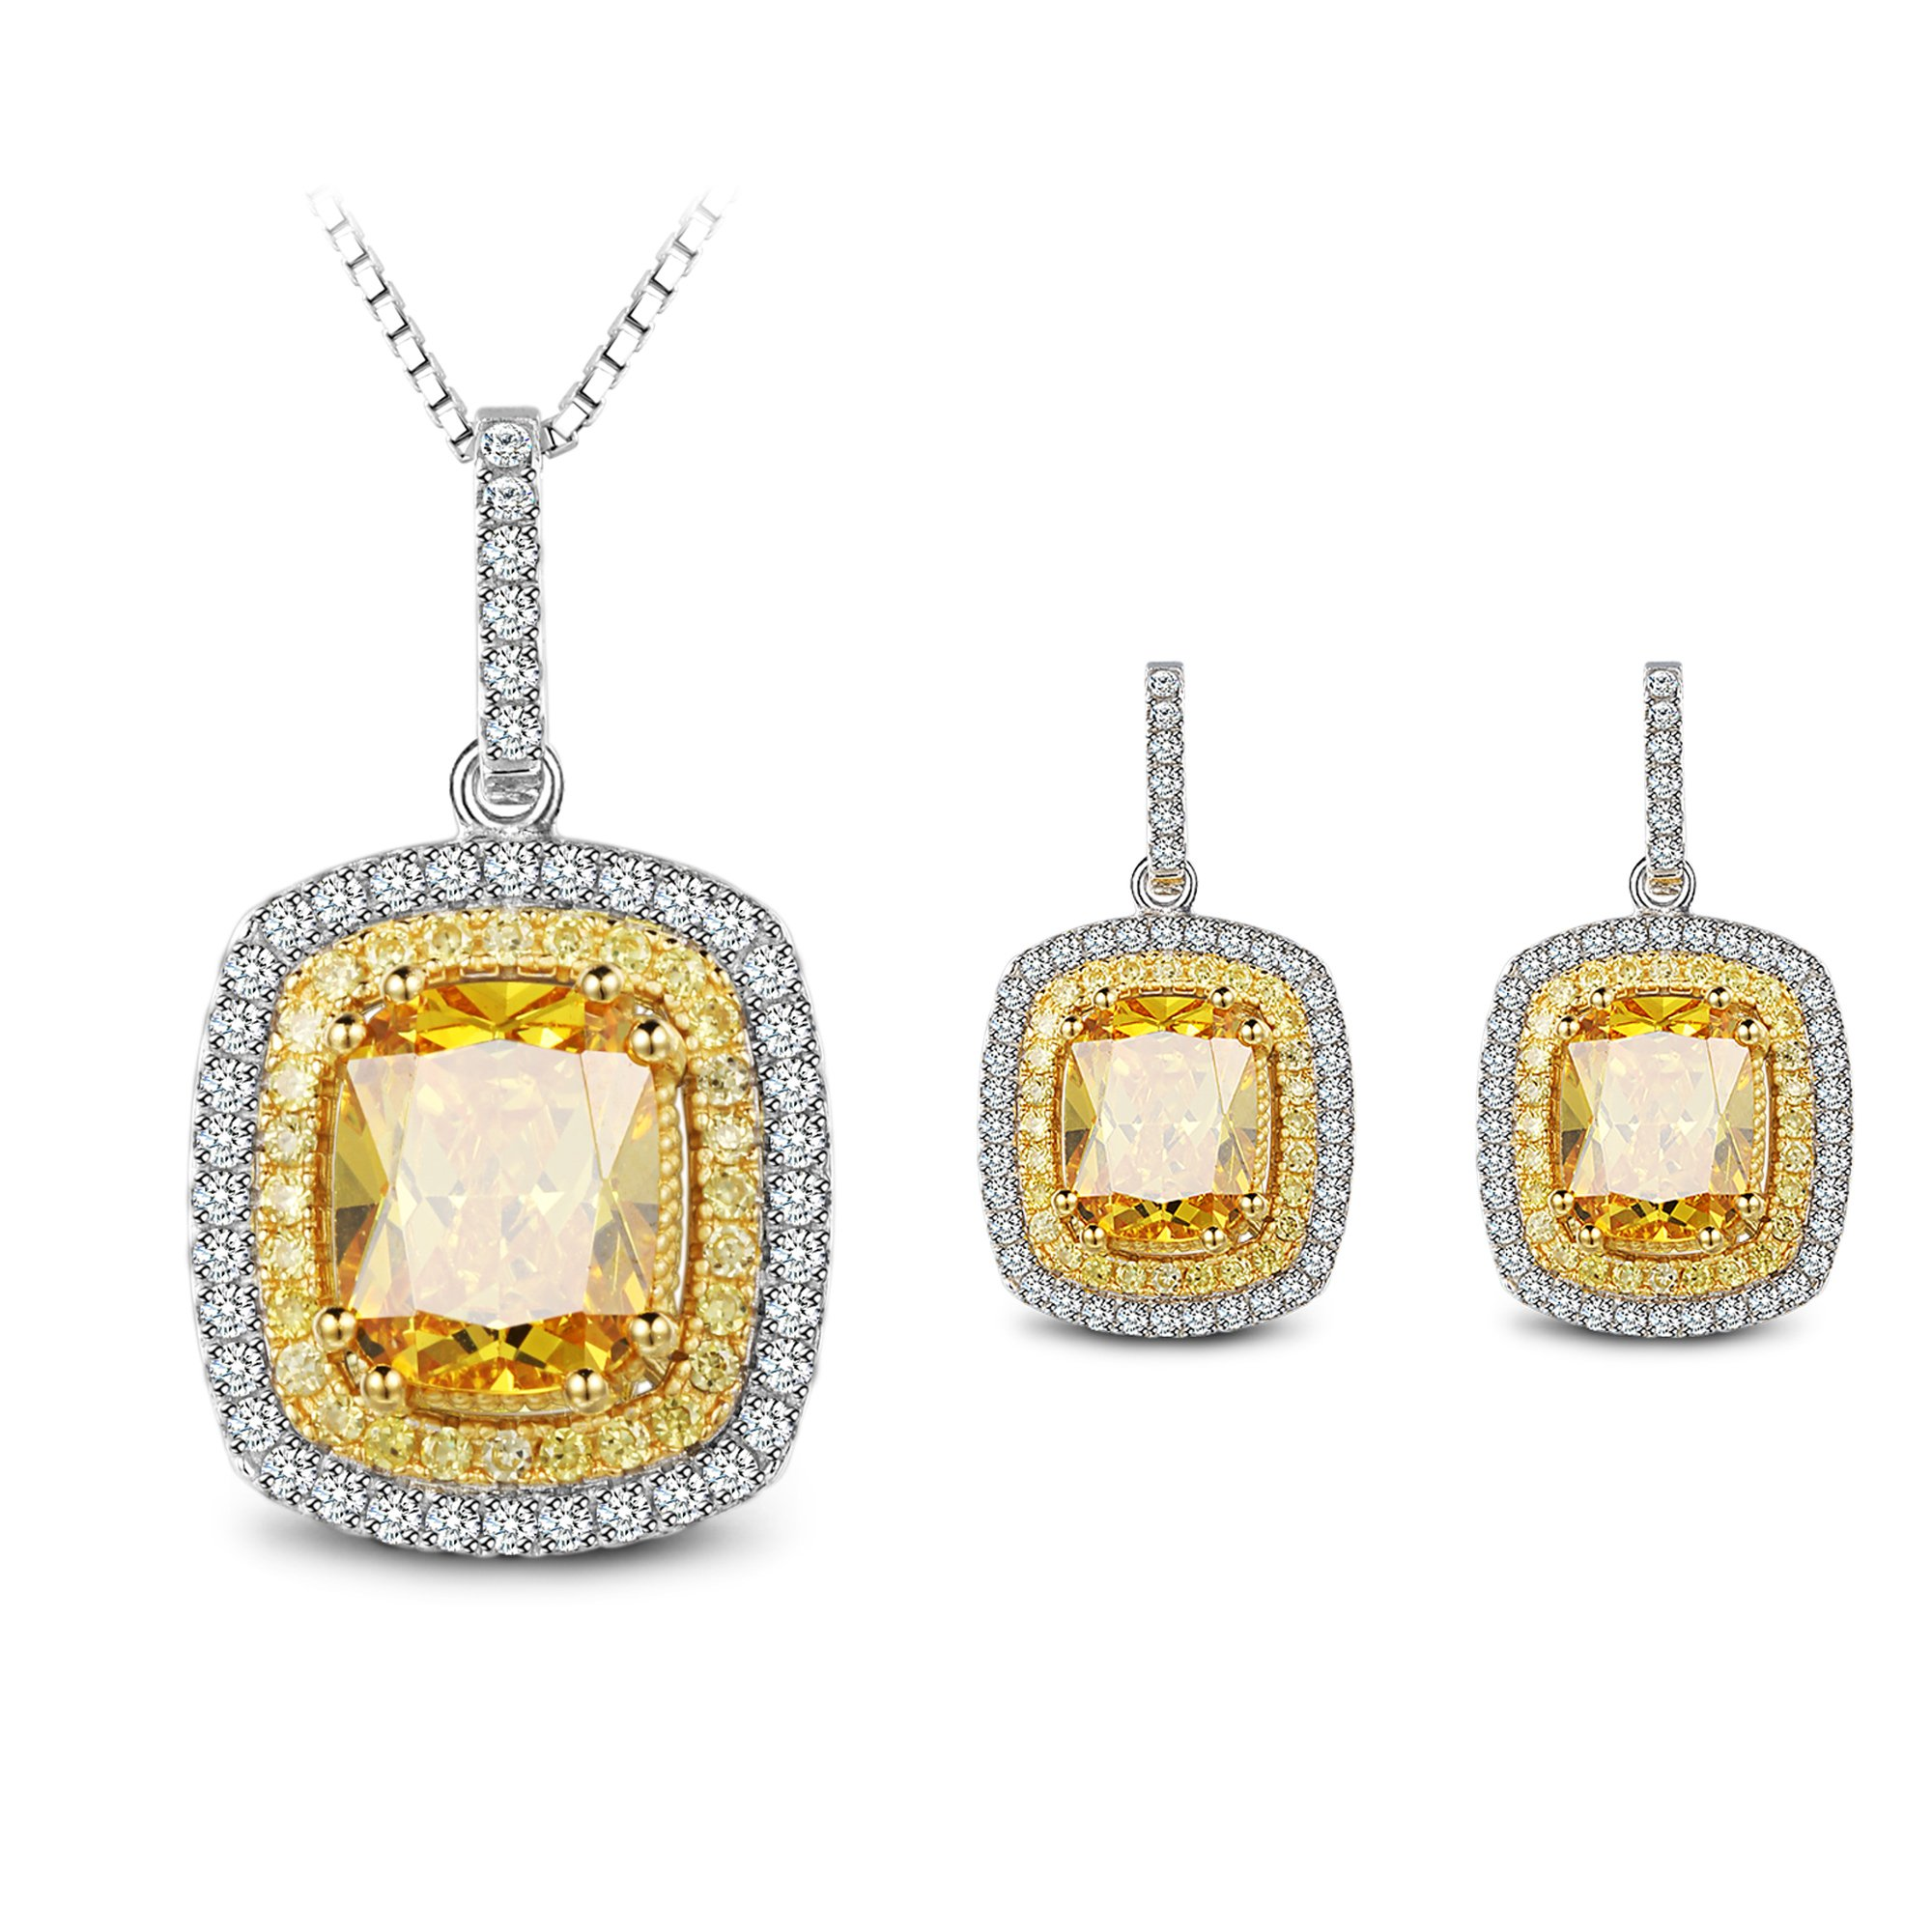 925 Sterling Silver Cubic Zirconia Pendant Necklace & Earrings Jewelry Sets Love Gift